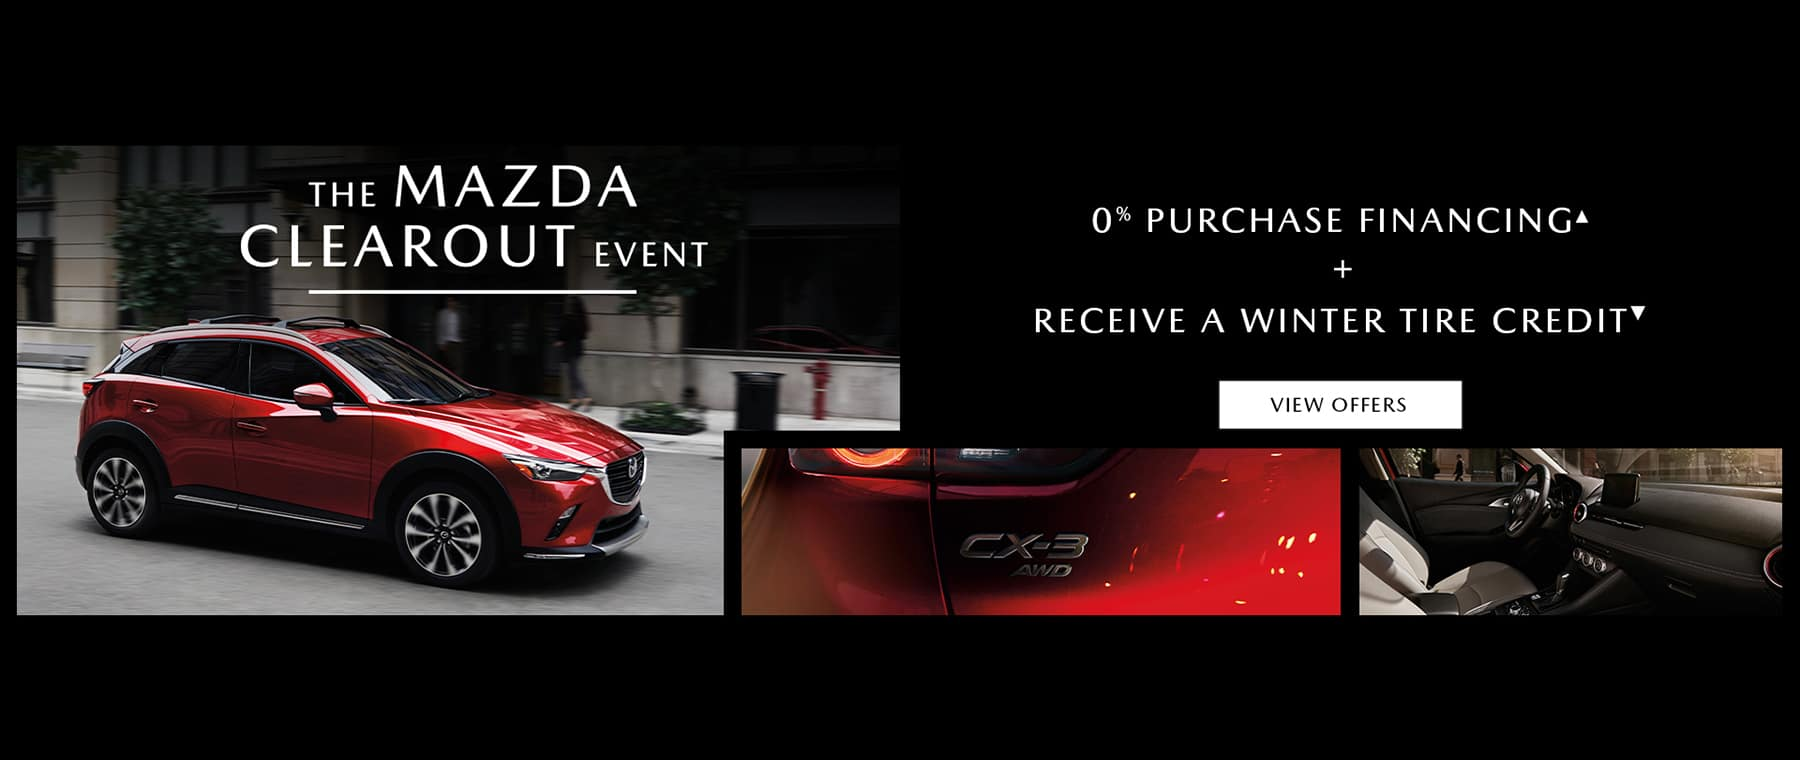 mazda-clearout-banner-red-cx3-exterior-and-interior